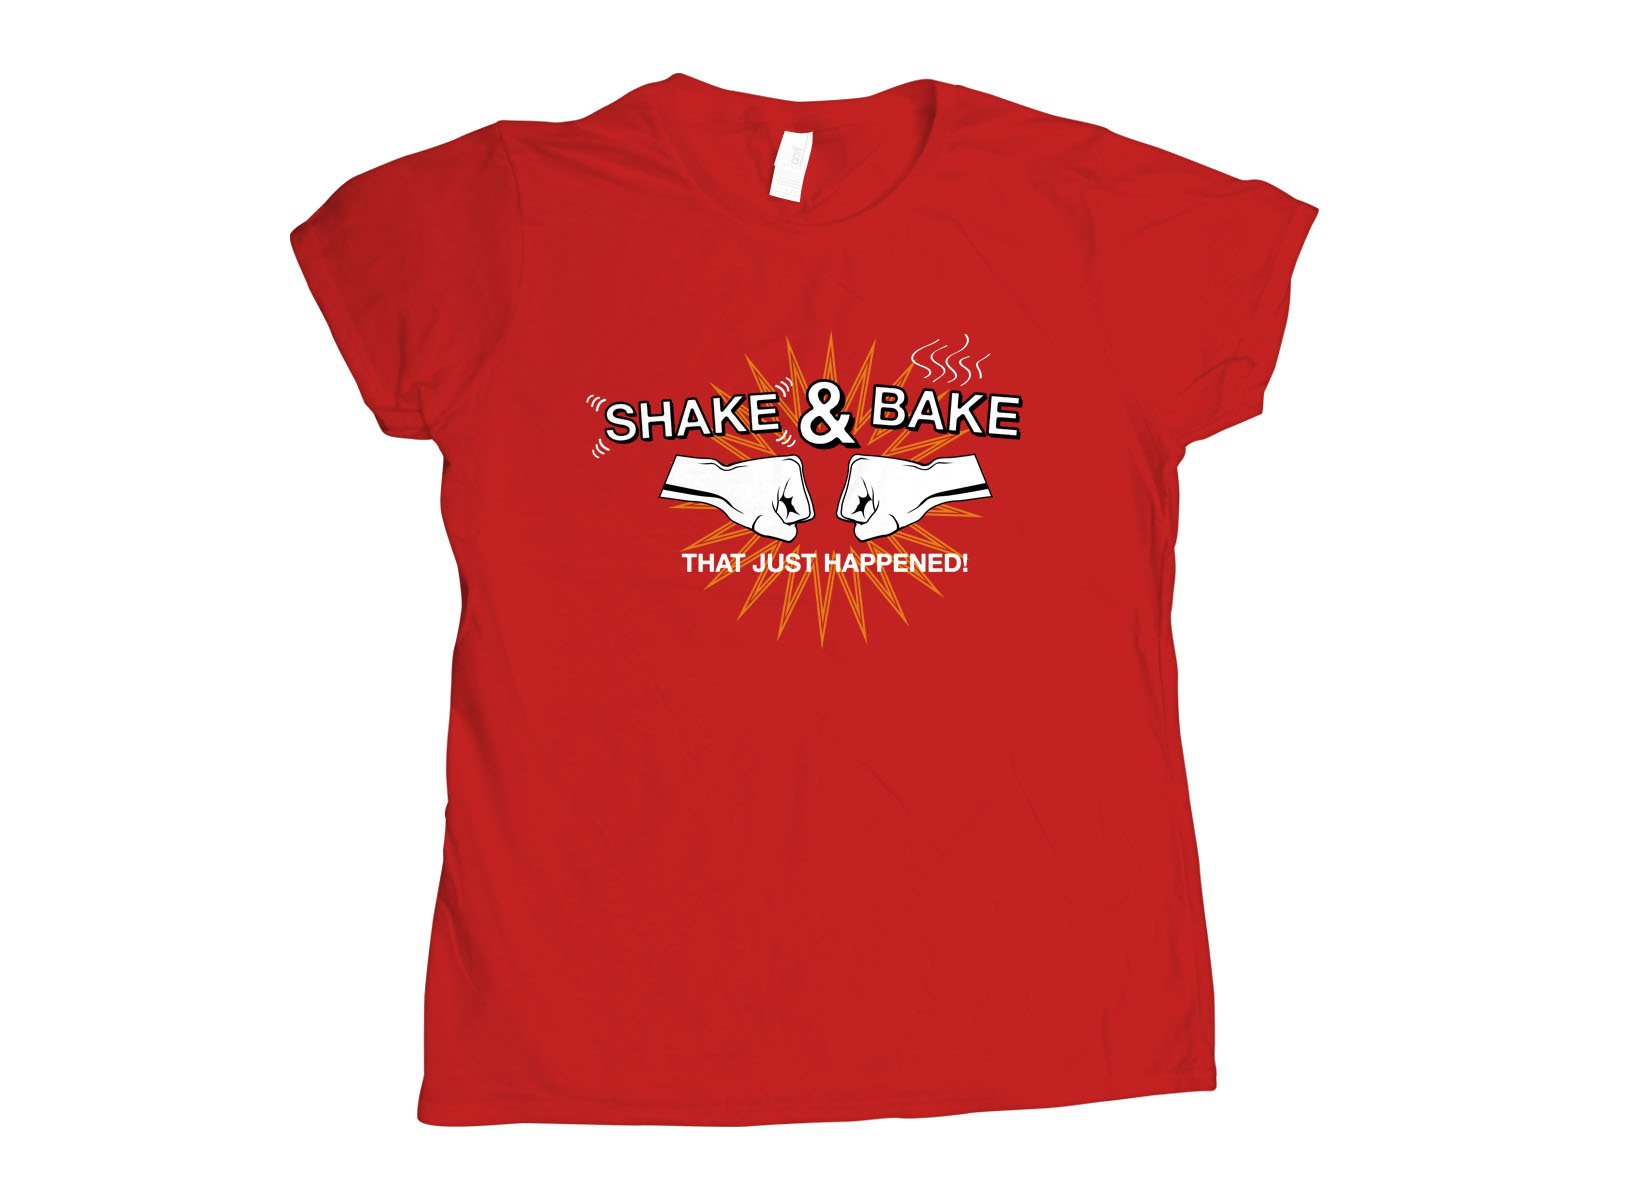 Shake & Bake on Womens T-Shirt